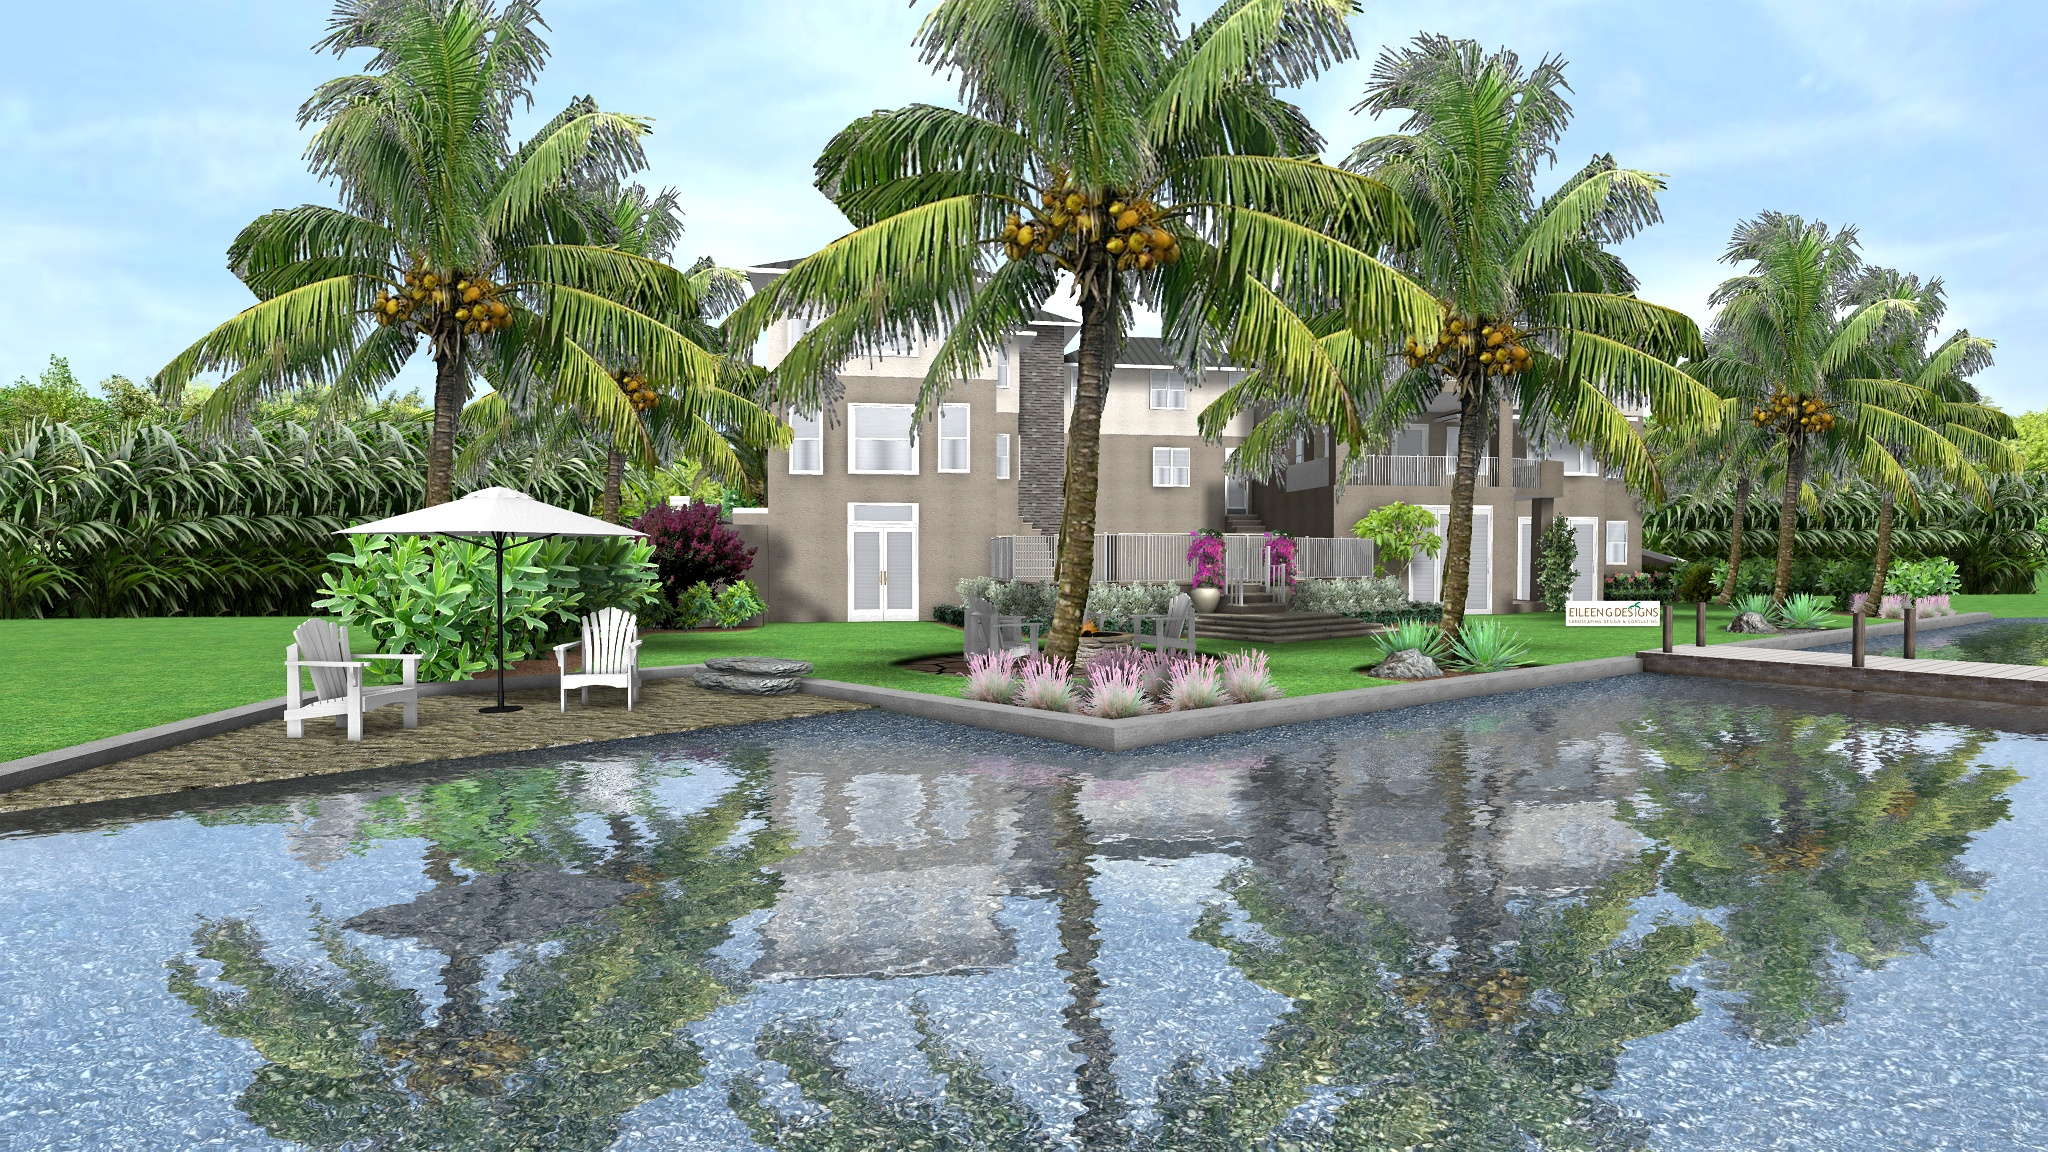 Tropical landscape design for new waterfront home in for Florida landscape design